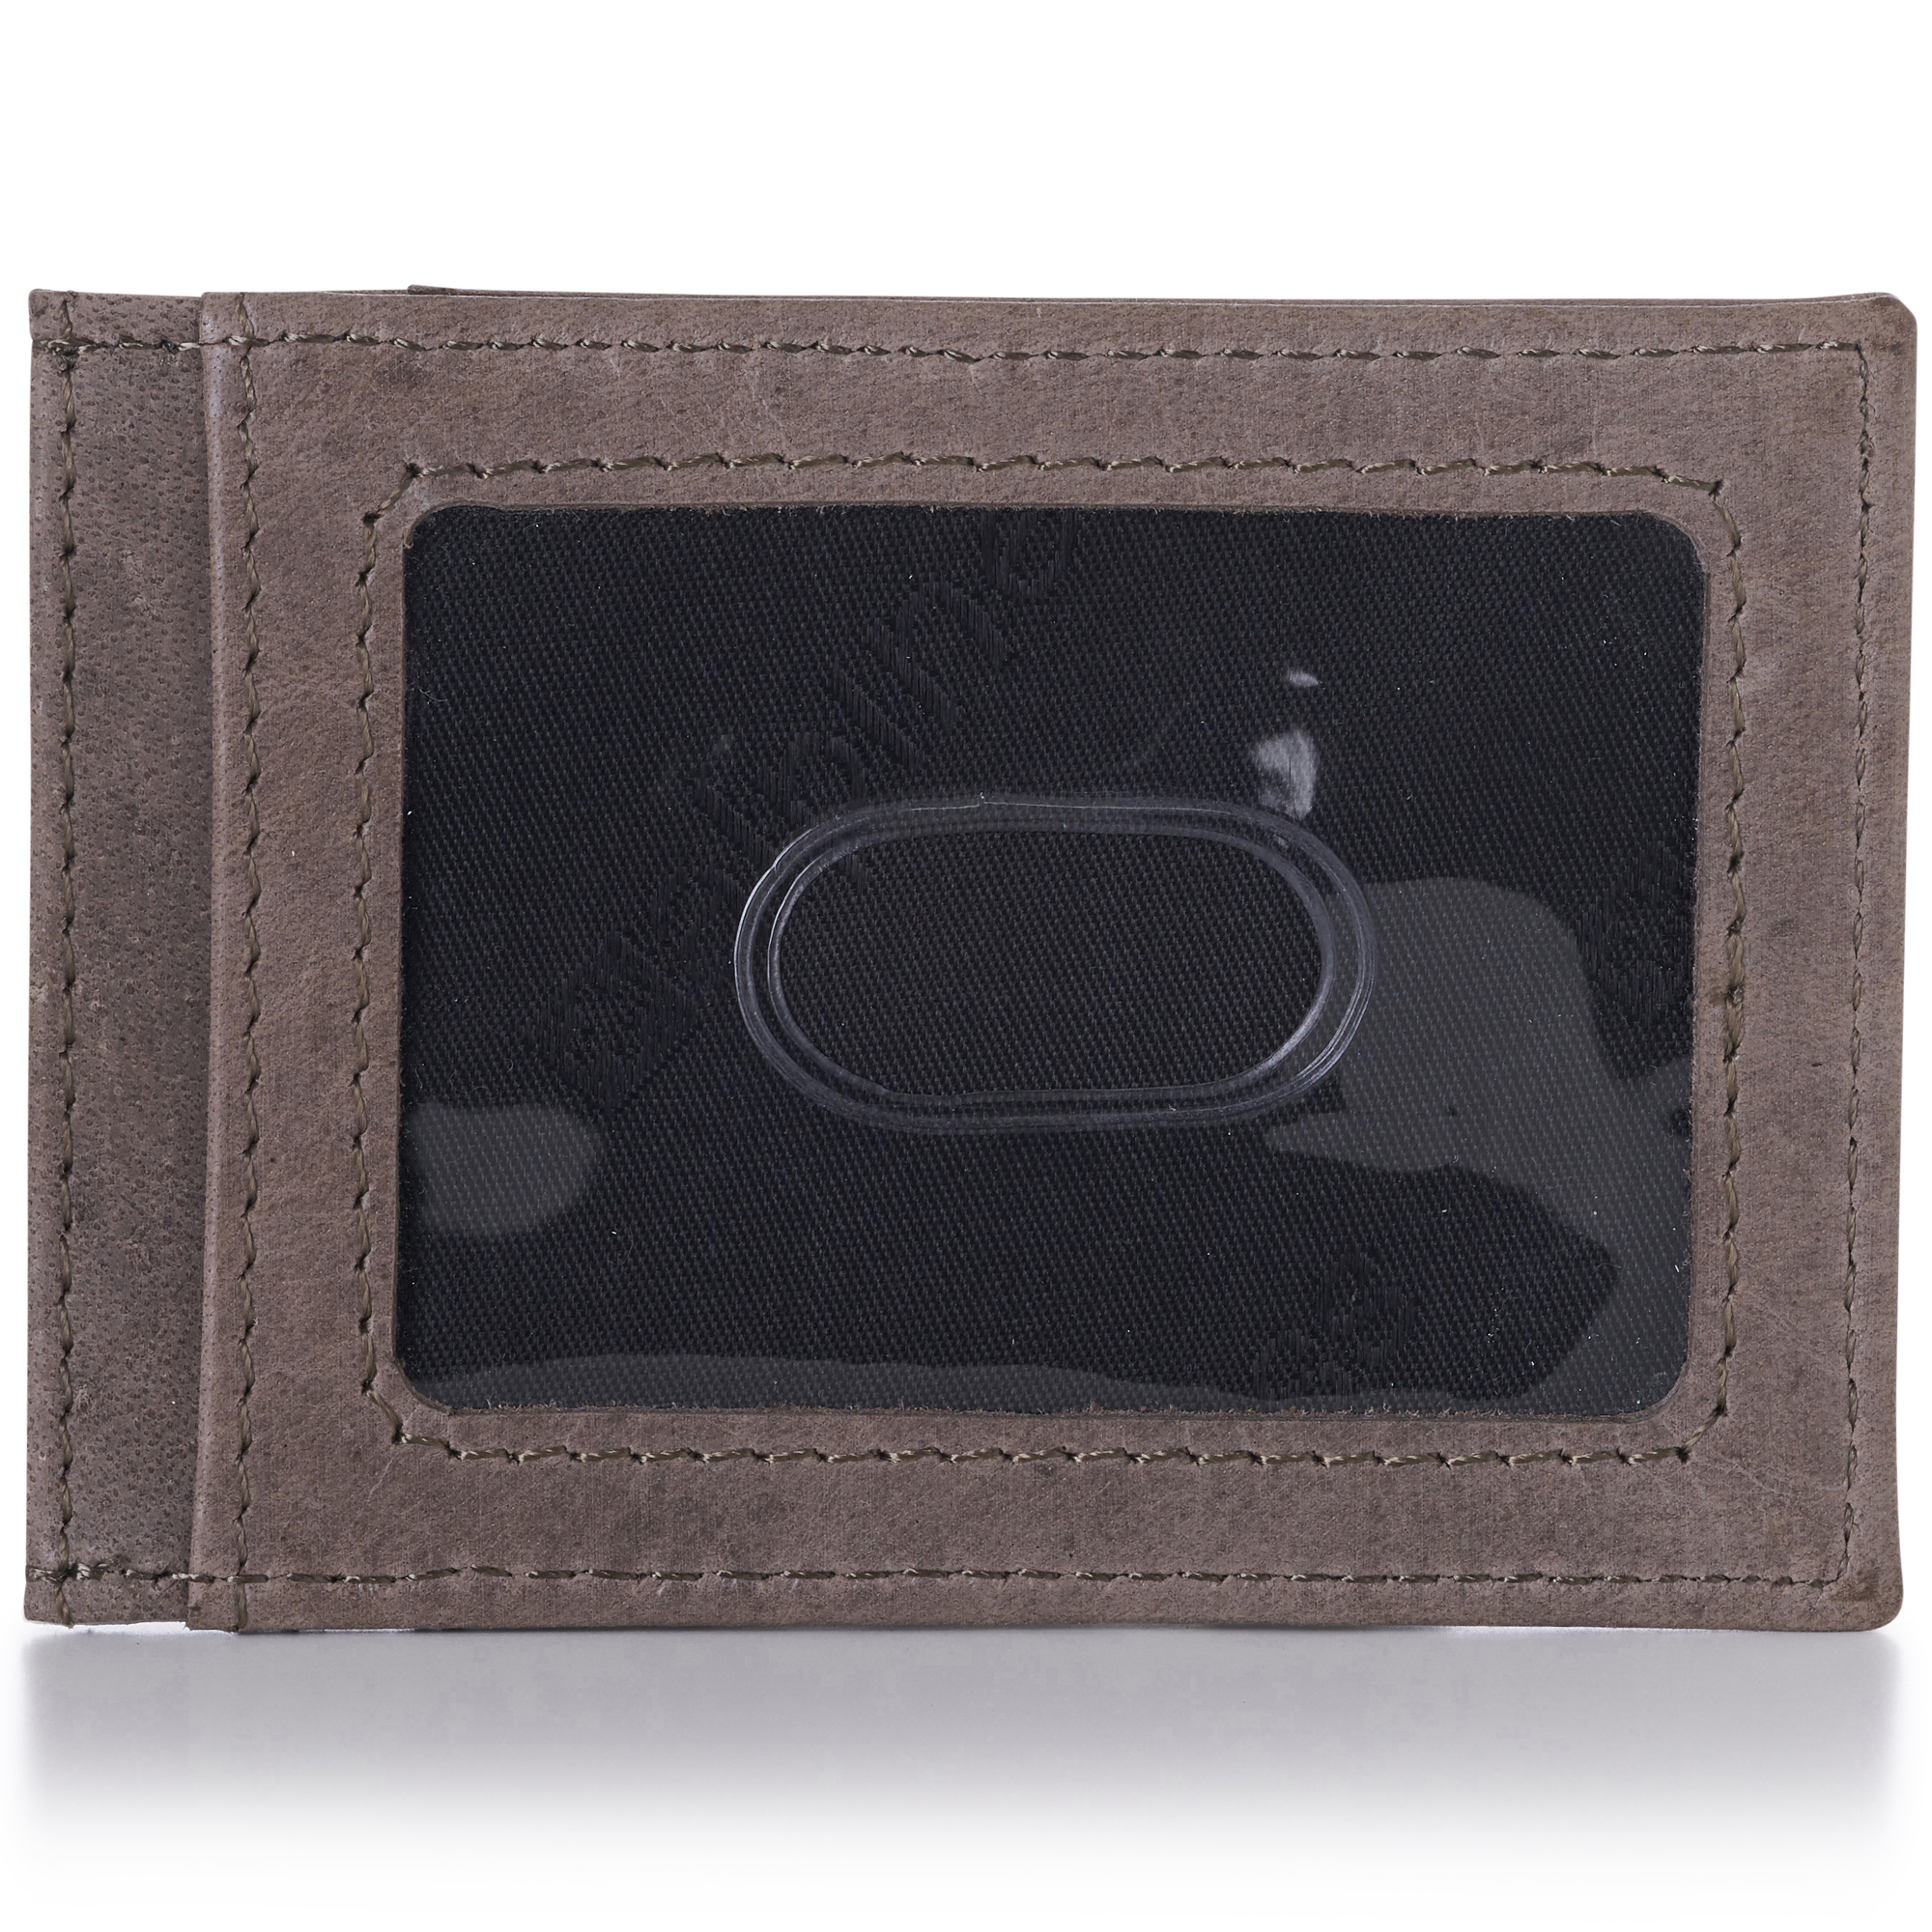 AlpineSwiss-Mens-Leather-Money-Clip-Magnet-Front-Pocket-Wallet-Slim-ID-Card-Case thumbnail 13